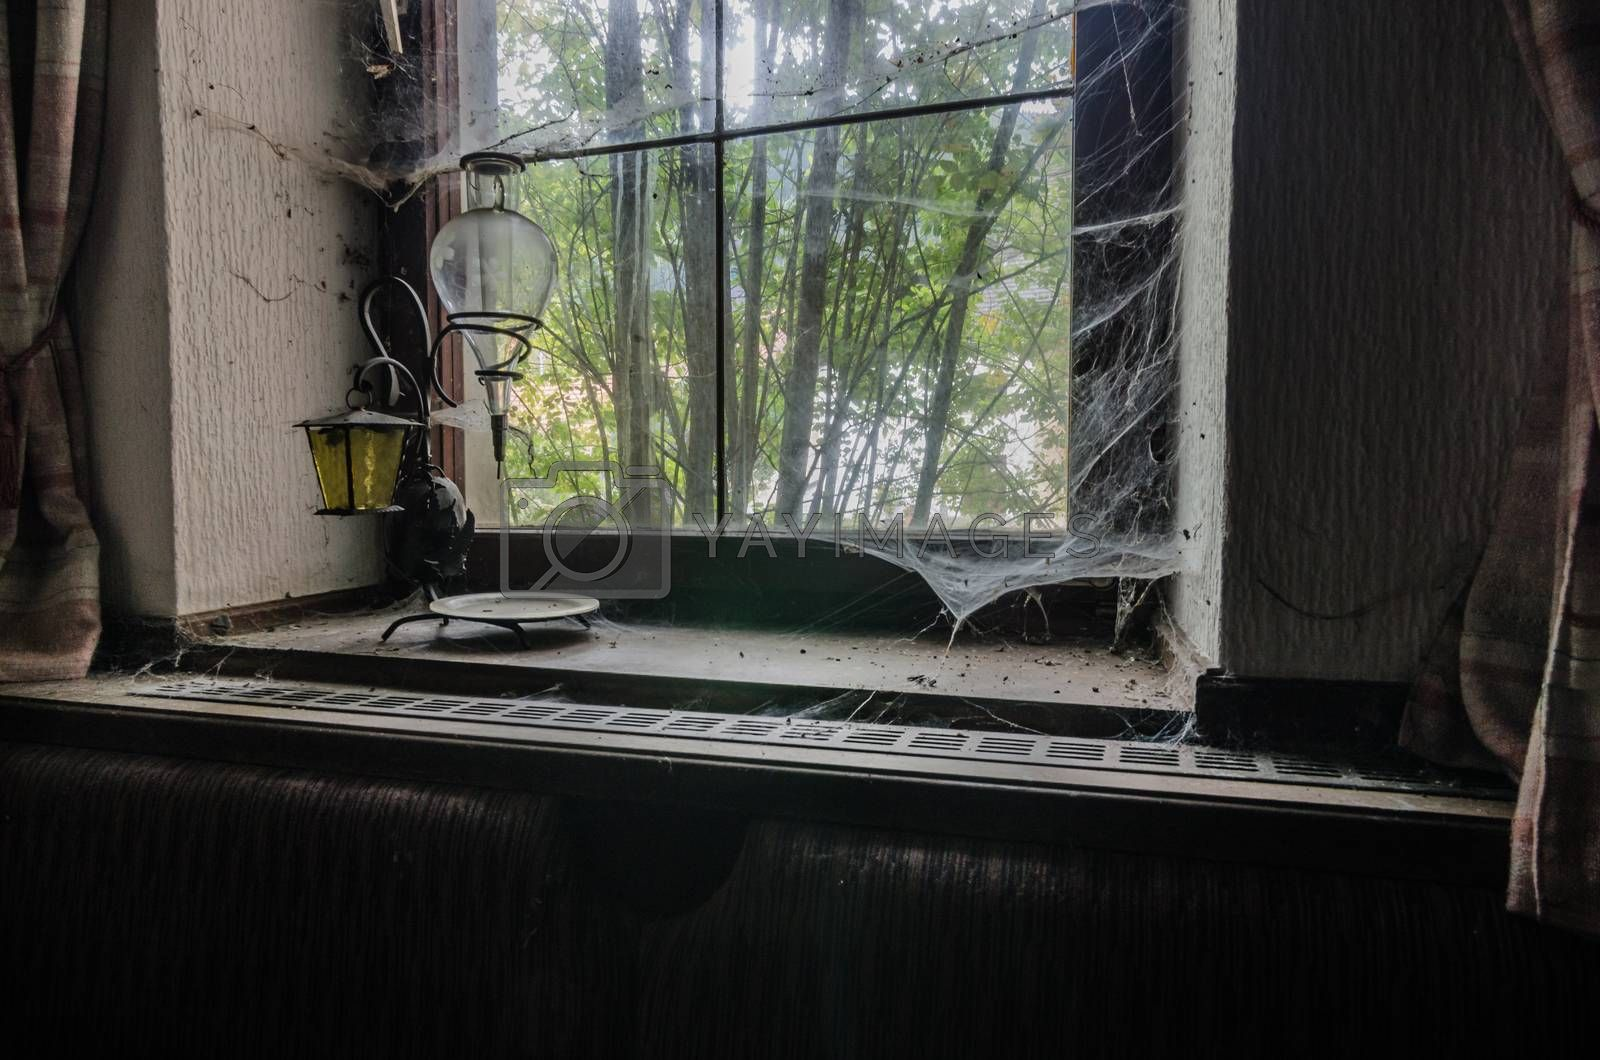 Old lamp on a windowsill with cobwebs